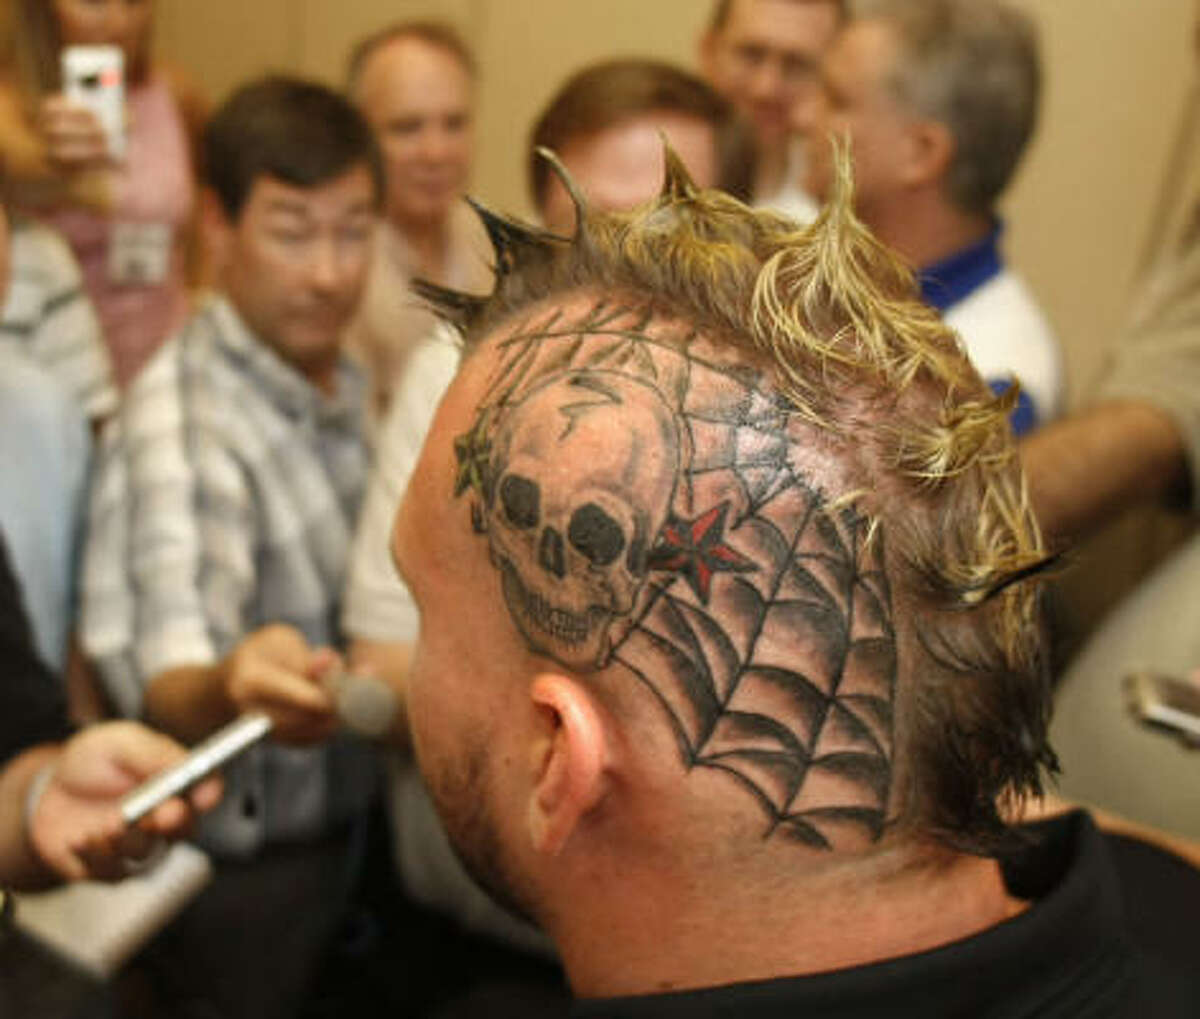 Texas Tech offensive lineman Brandon Carter showed off his frightful tatoo and Mohawk at media day.